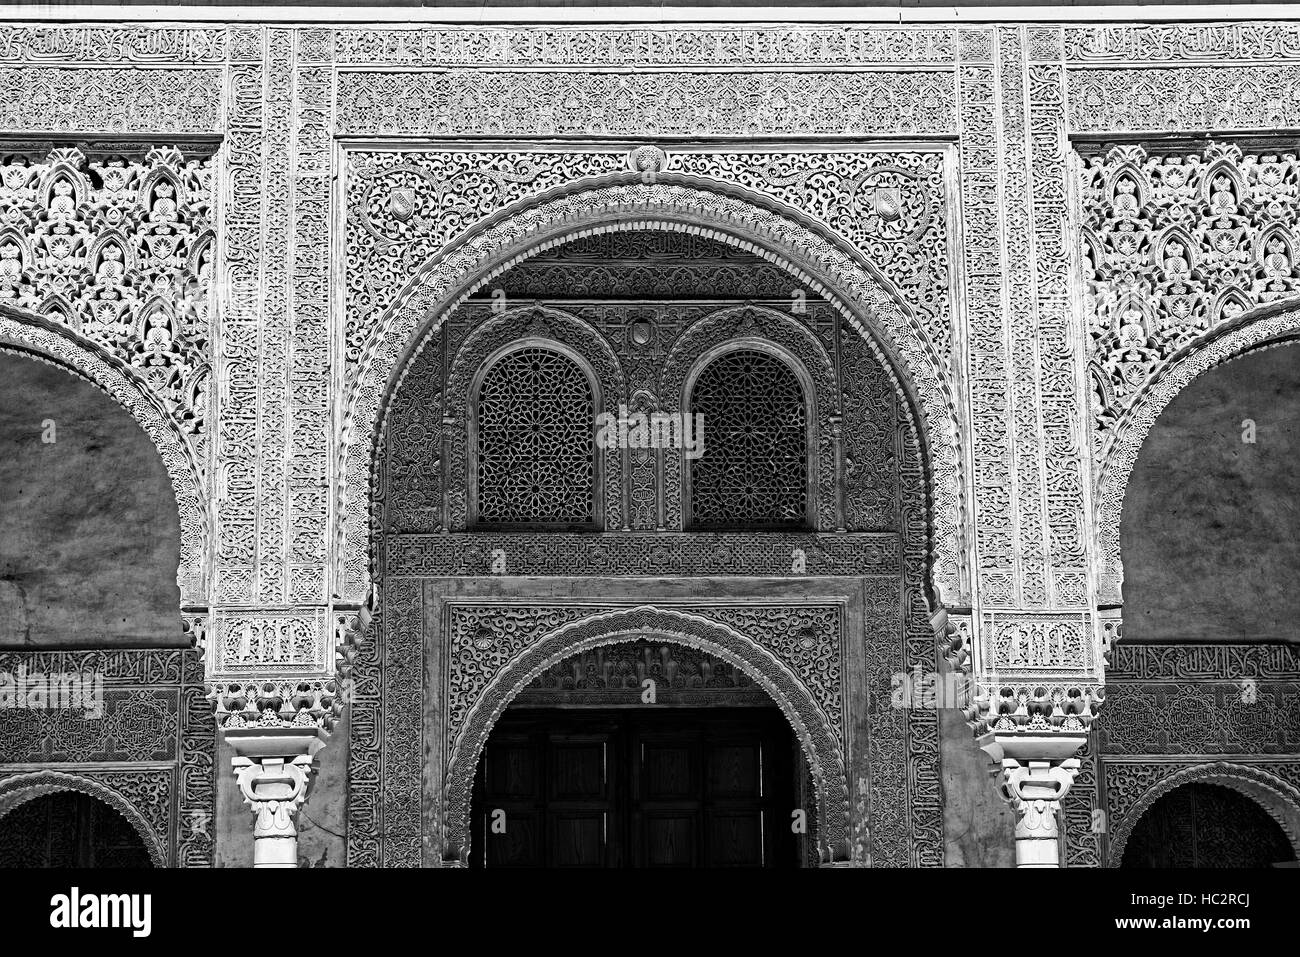 arched arch archway ornate wall detail nasrid palace Alhambra Gardens Generalife black and white RM Floral - Stock Image